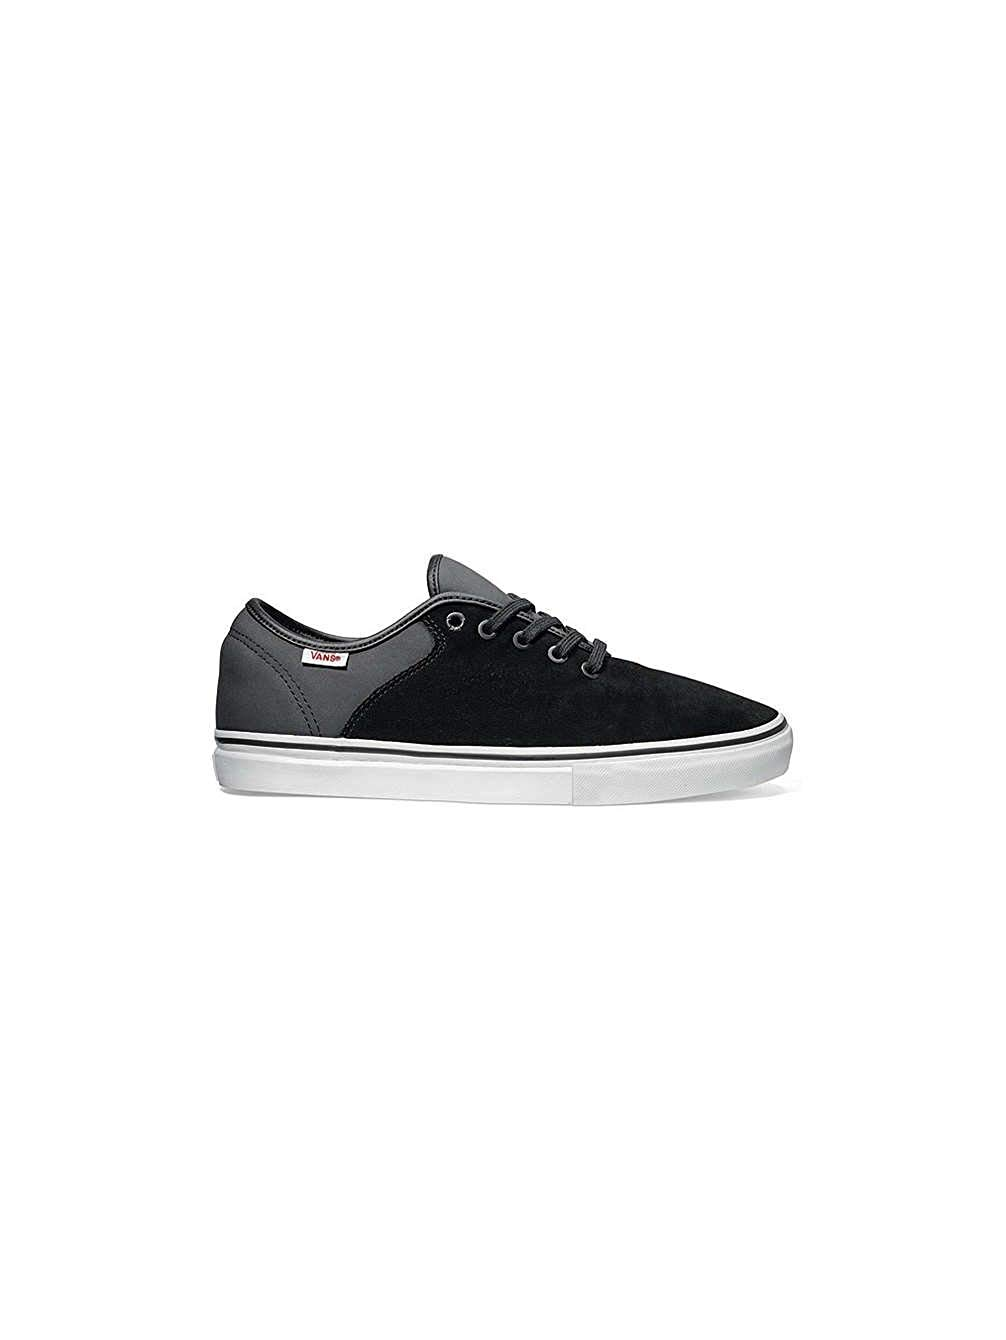 d78e198360ce87 Get Quotations · Vans OTW Stage 4 Low (Chris Pfanner) Black Red Skateboarding  Shoes 6.5 D